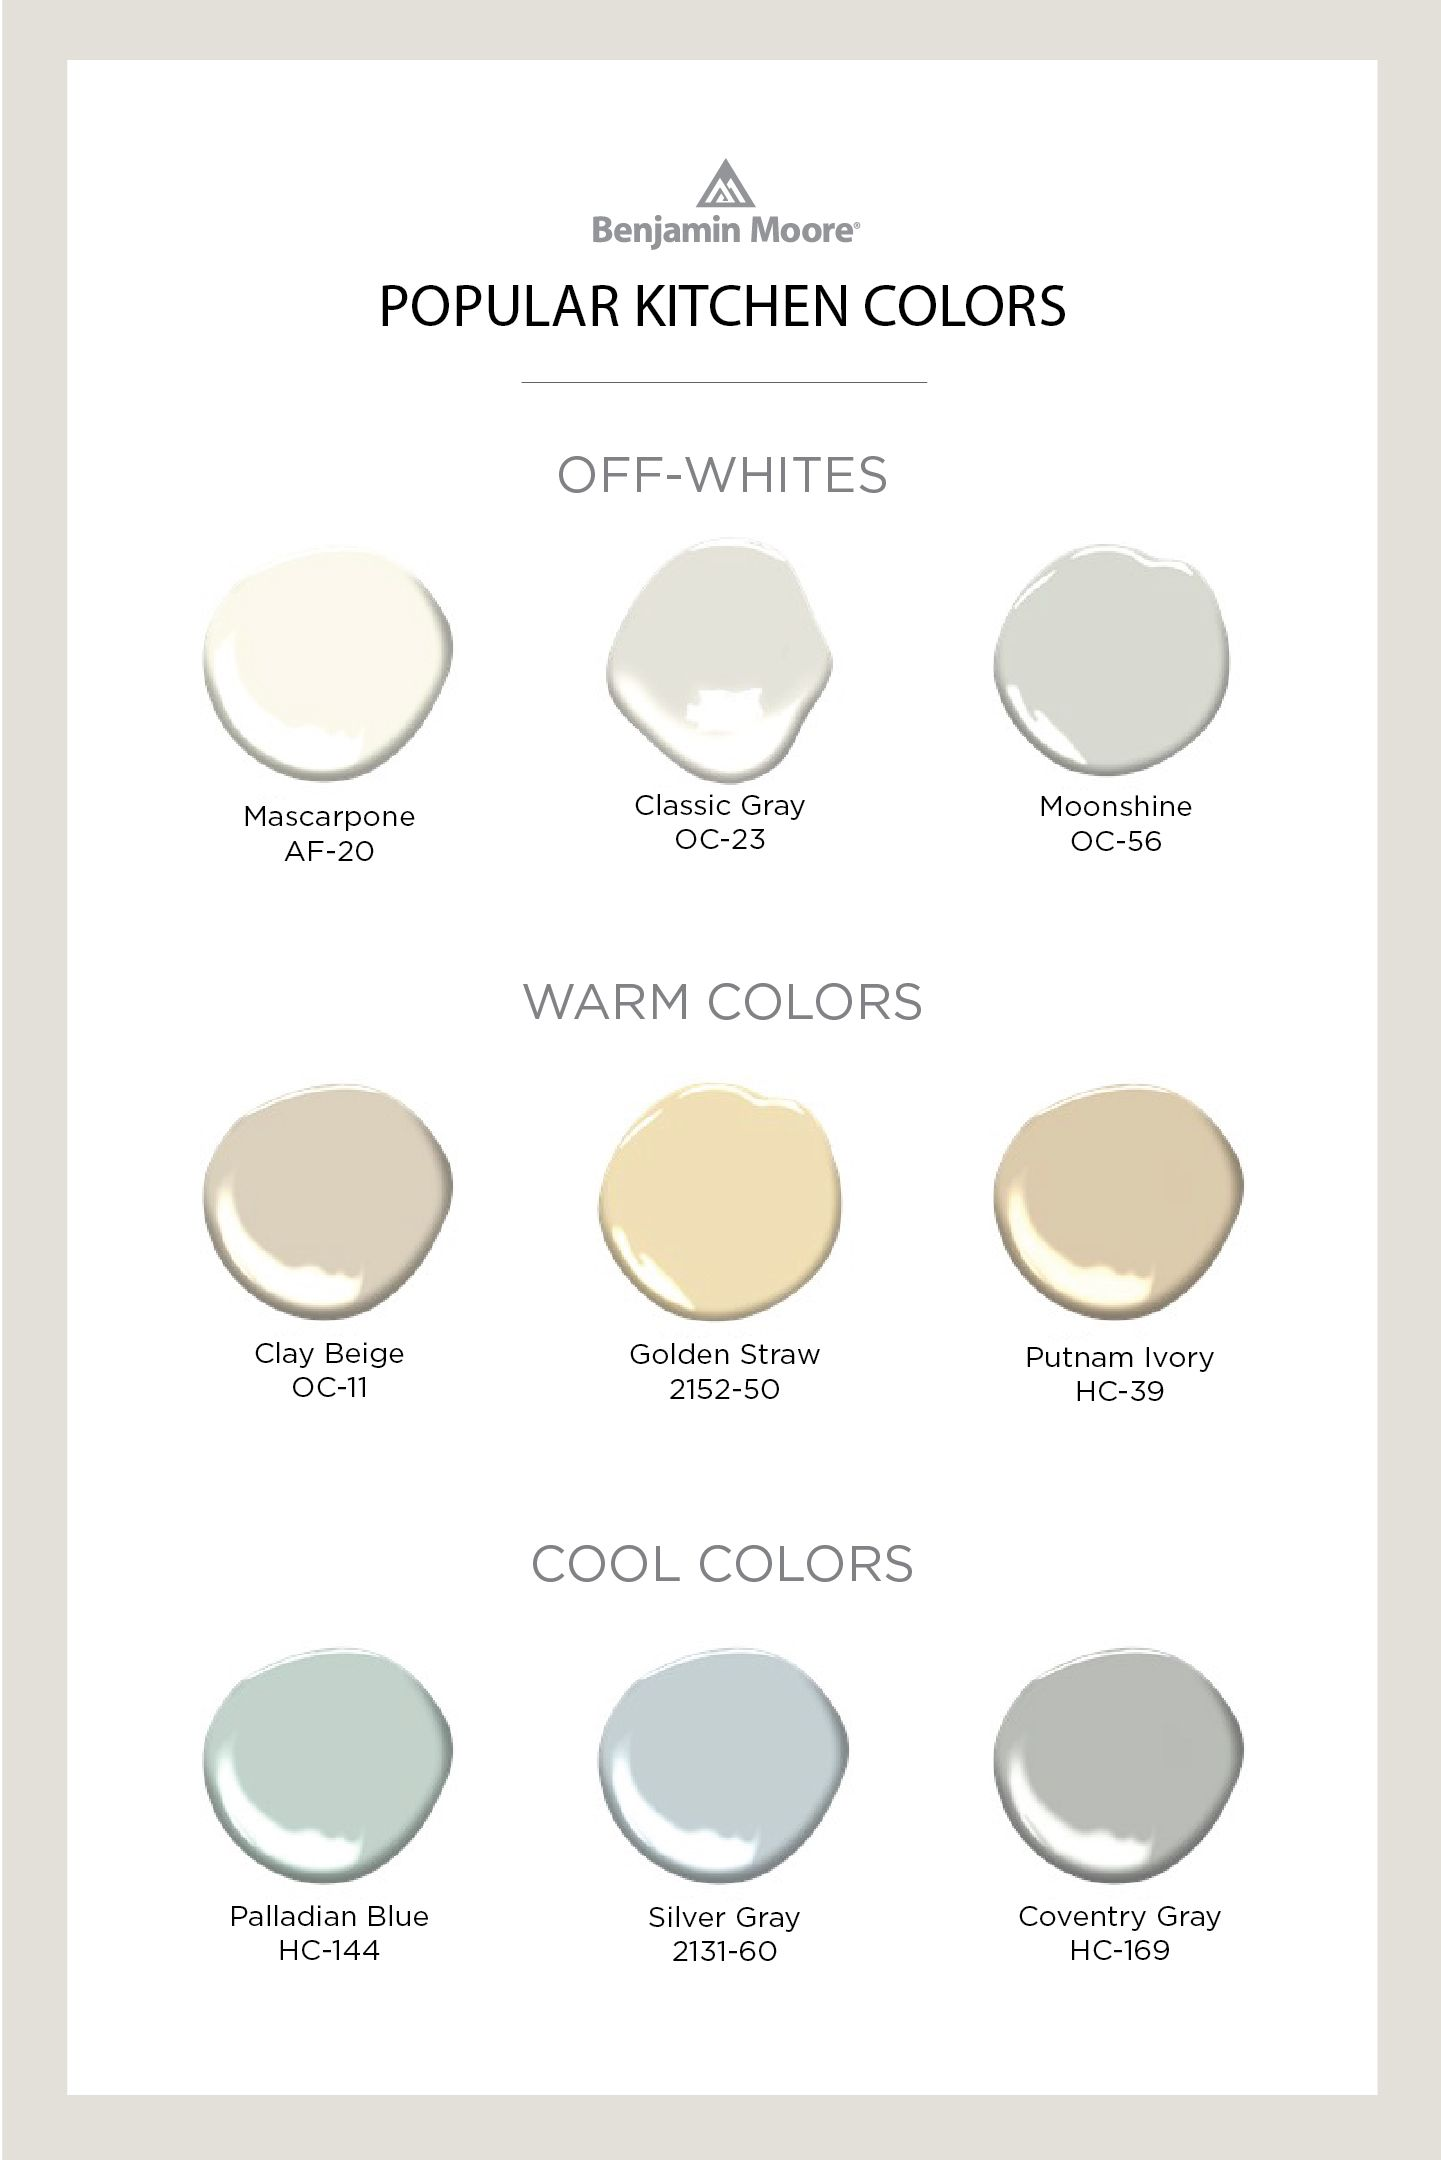 Photo of Benjamin Moore Most Popular Kitchen Colors